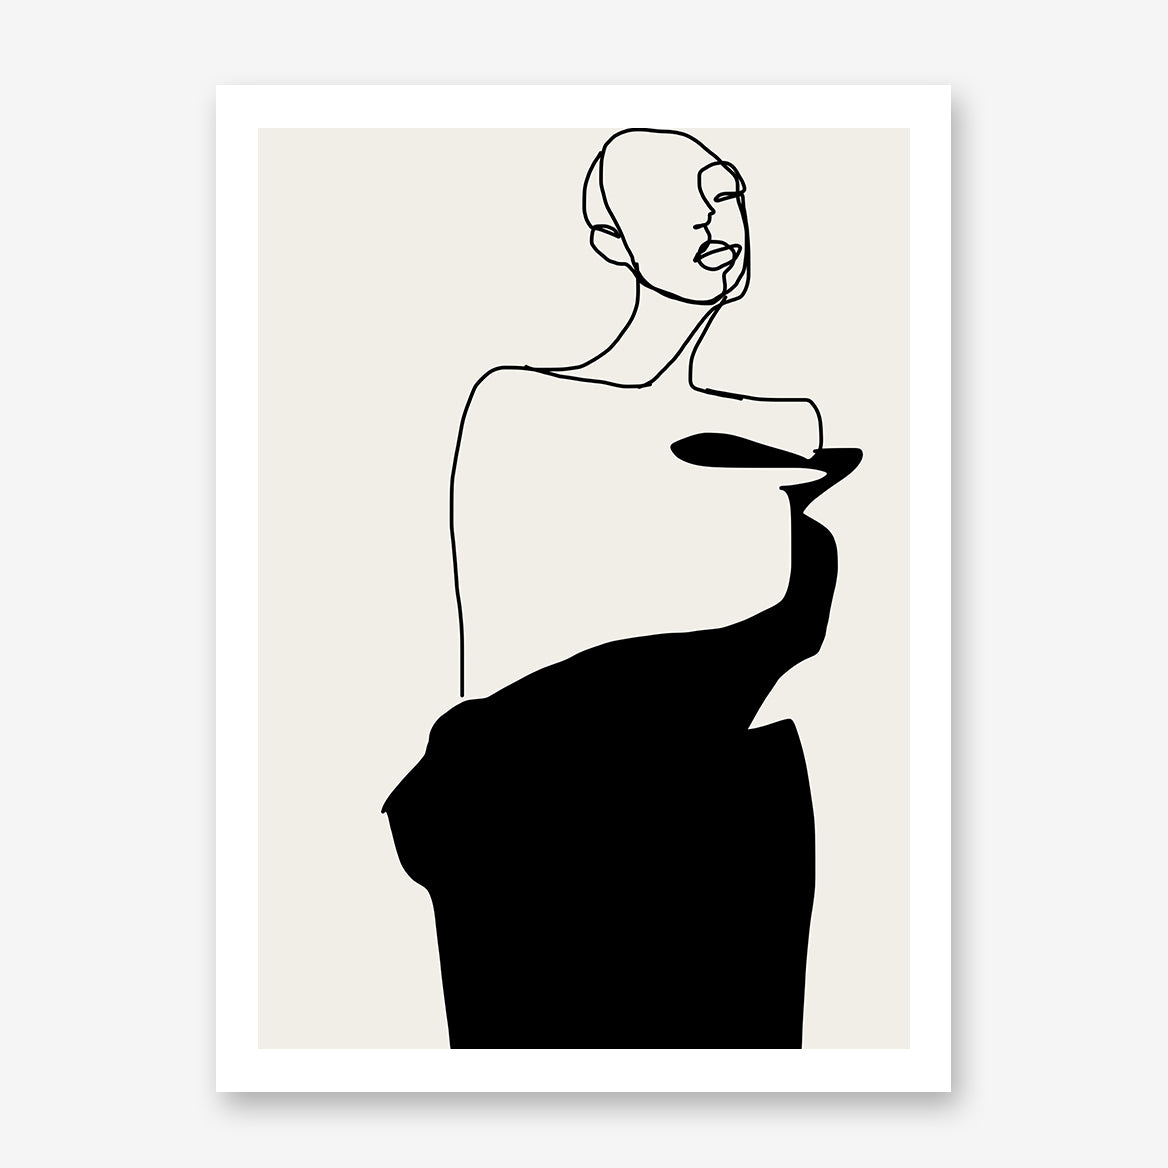 Line art poster print by Sophia Novosel, with an abstract woman in black and grey.